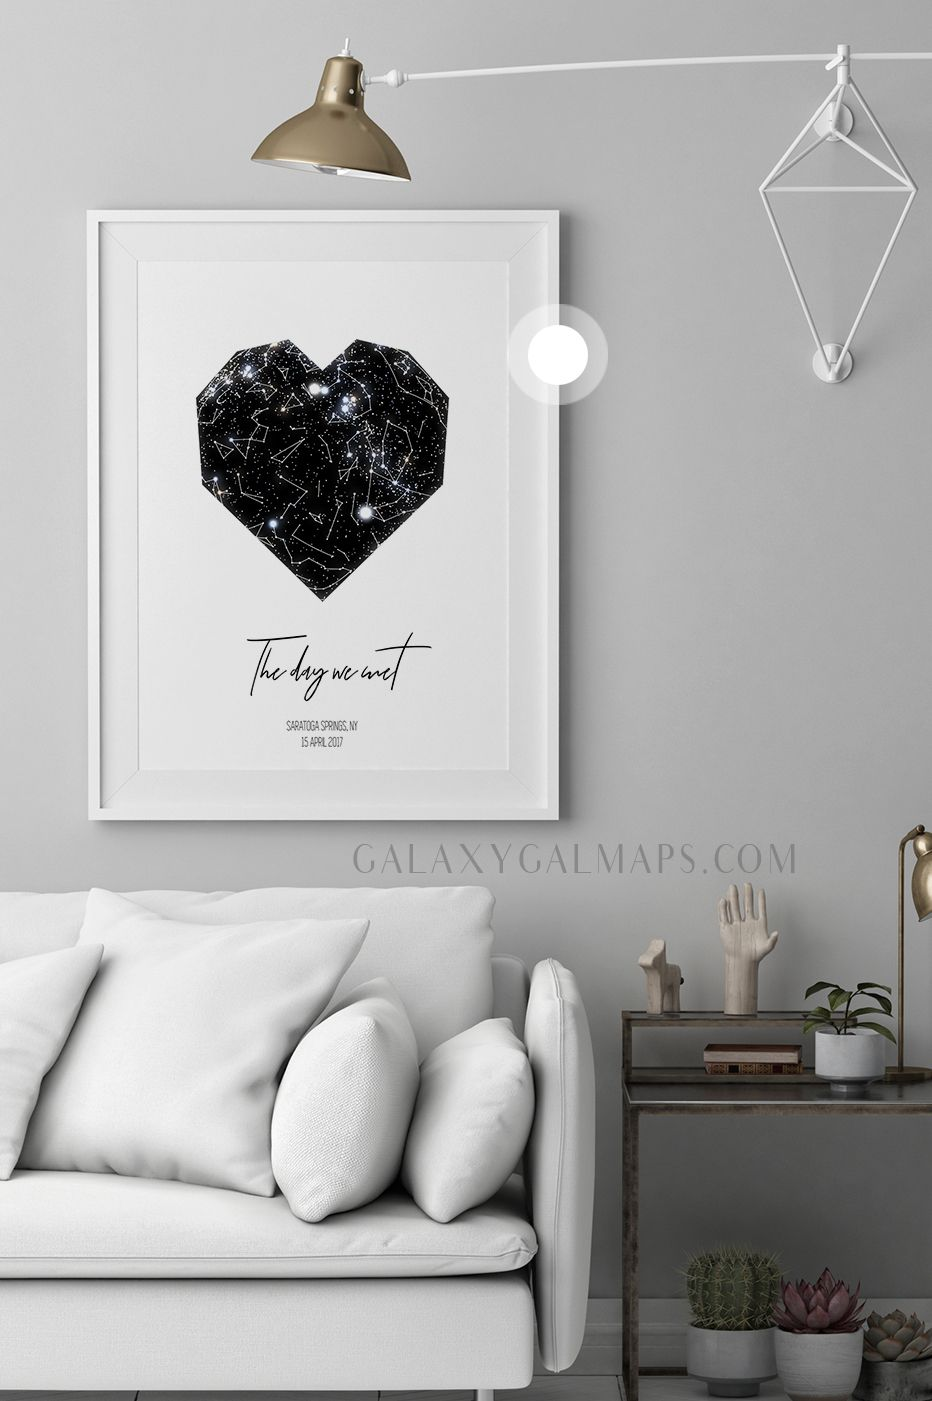 Personal star map by date and location constellation poster wall art black large printable flower girl nursery print inspirational also rh pinterest